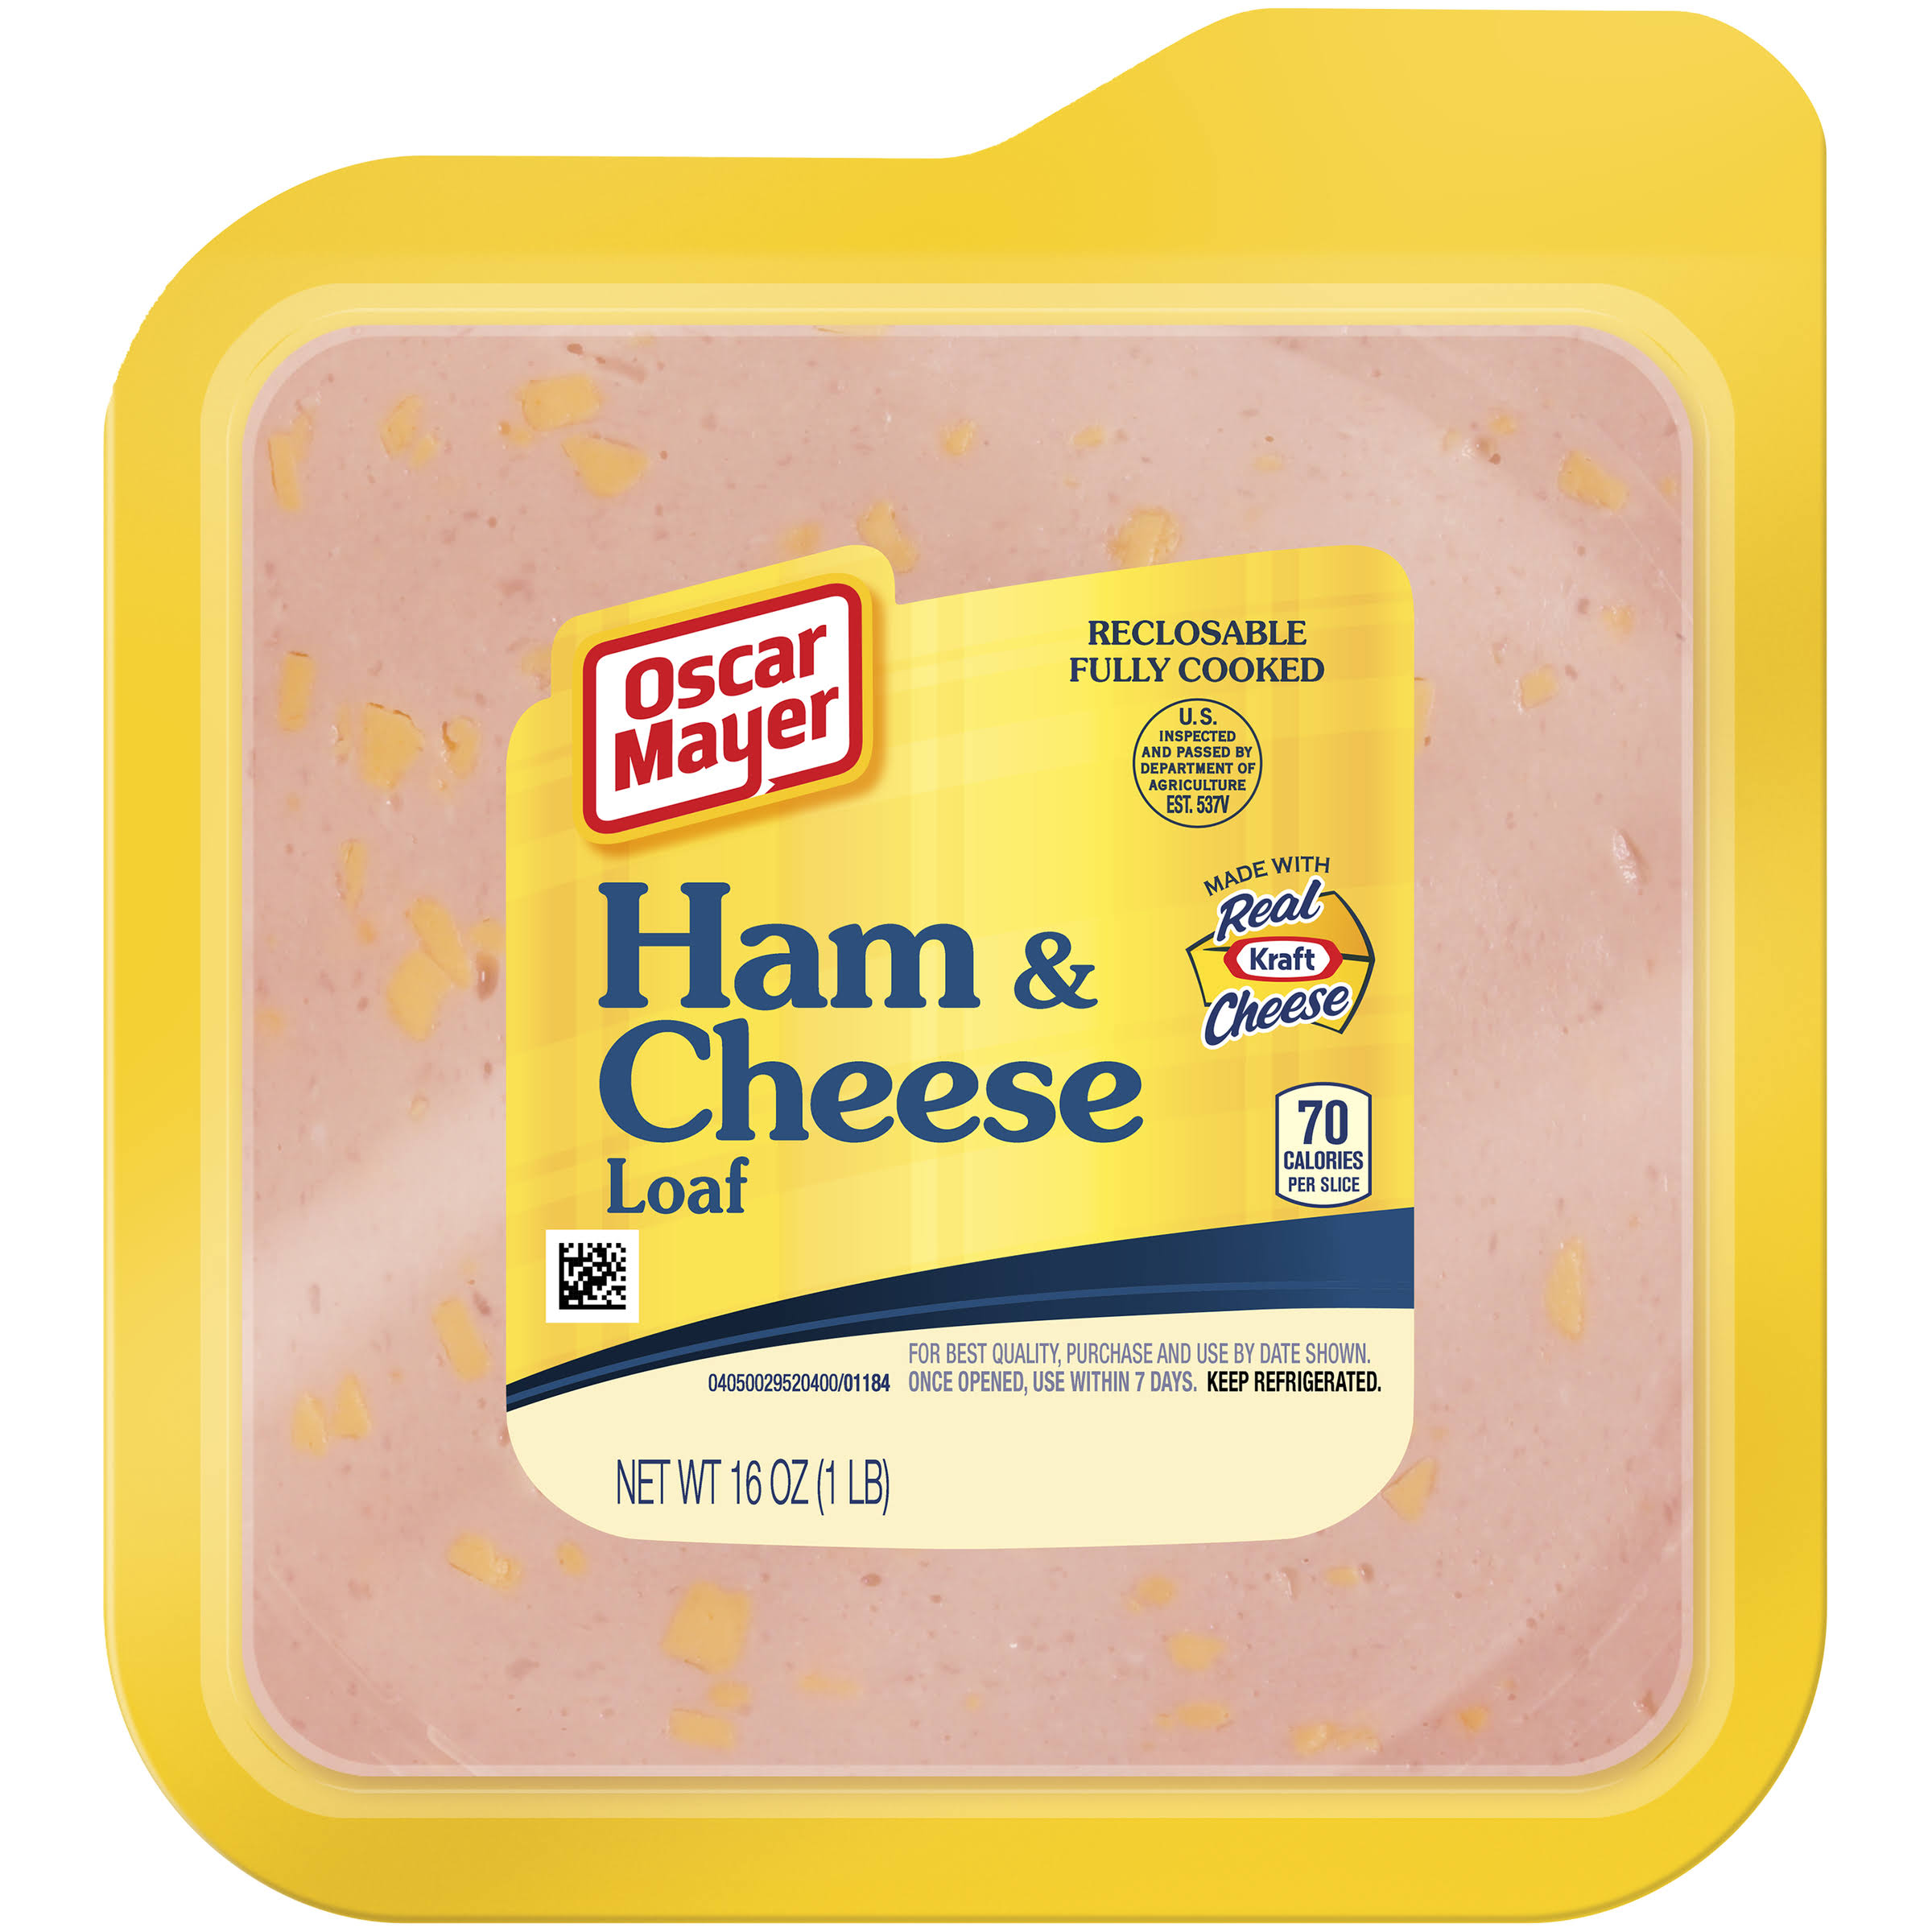 Oscar Mayer Ham & Cheese Loaf - 16oz